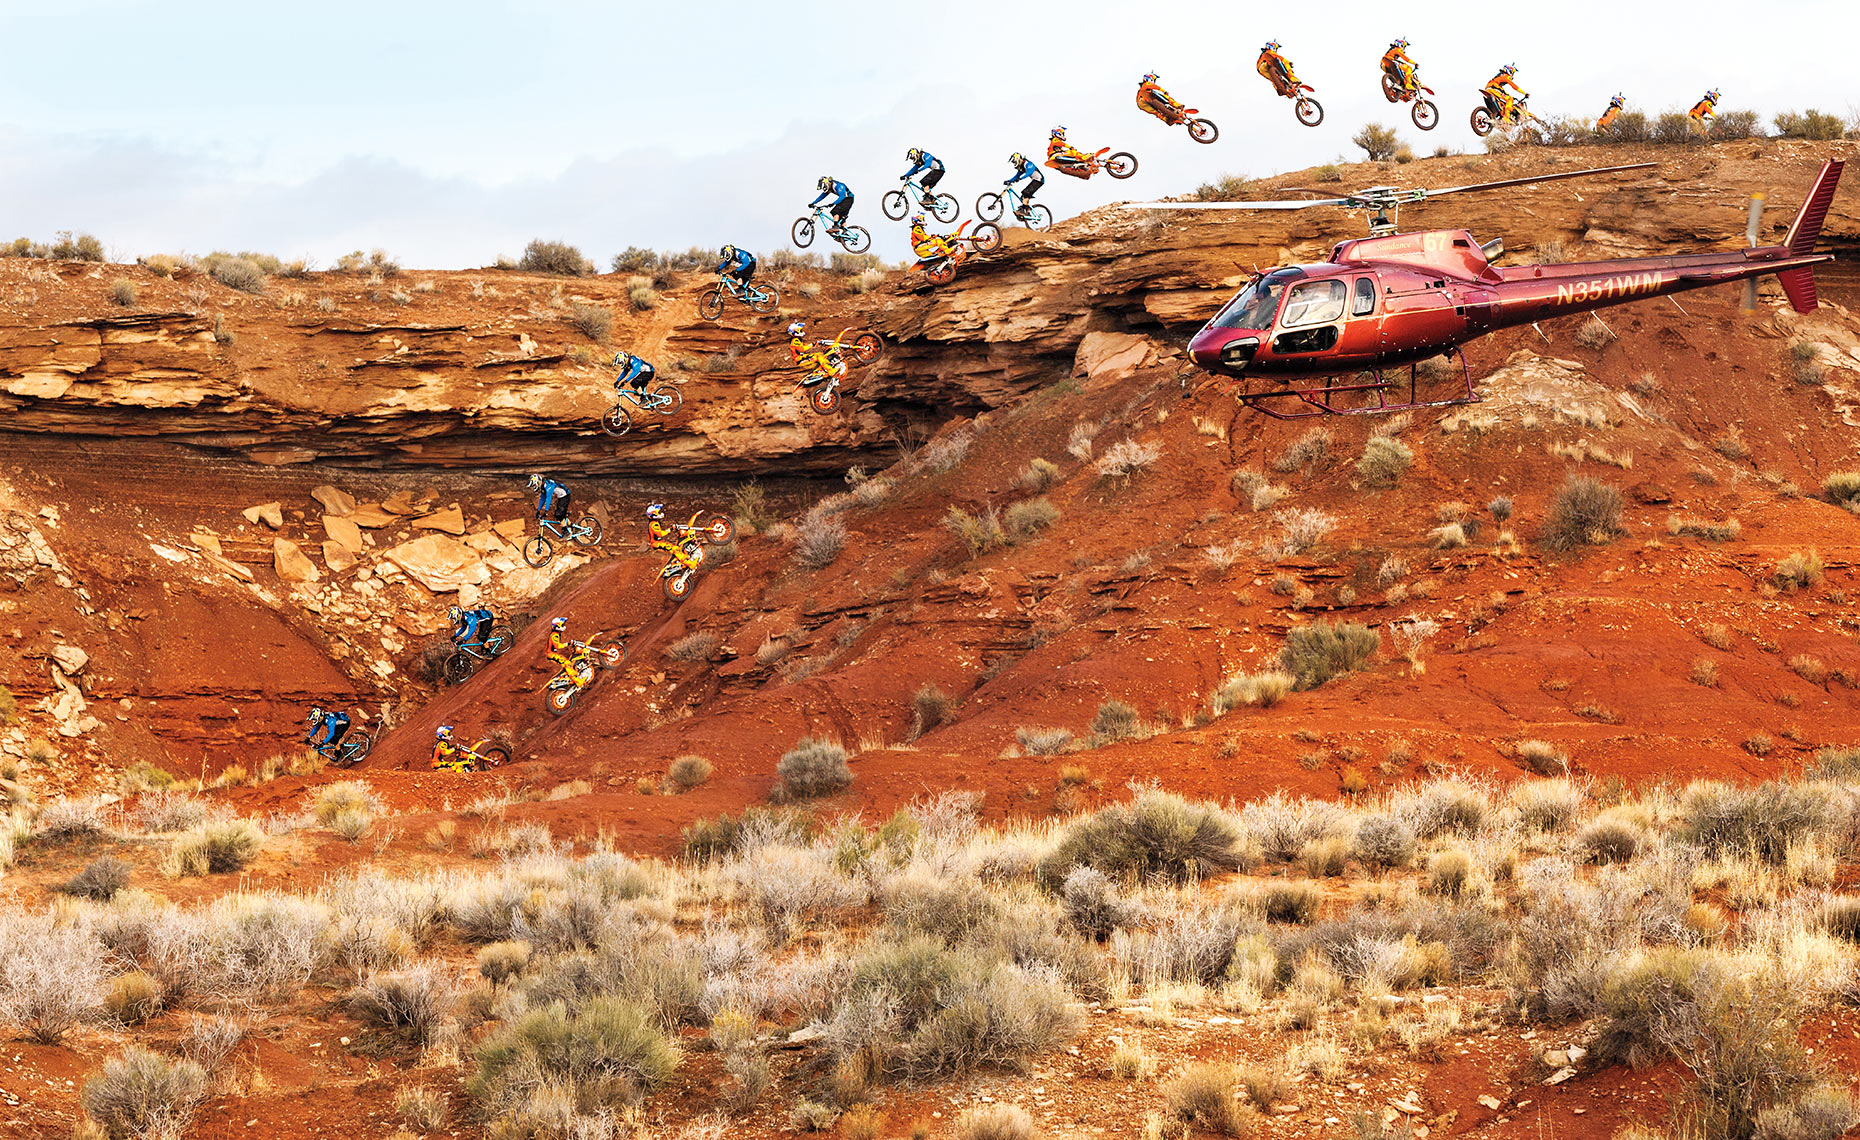 Cam_McCaul_Ronnie_Renner_Fox_Virgin_Utah_Rampage_Chris_Wellhausen_06